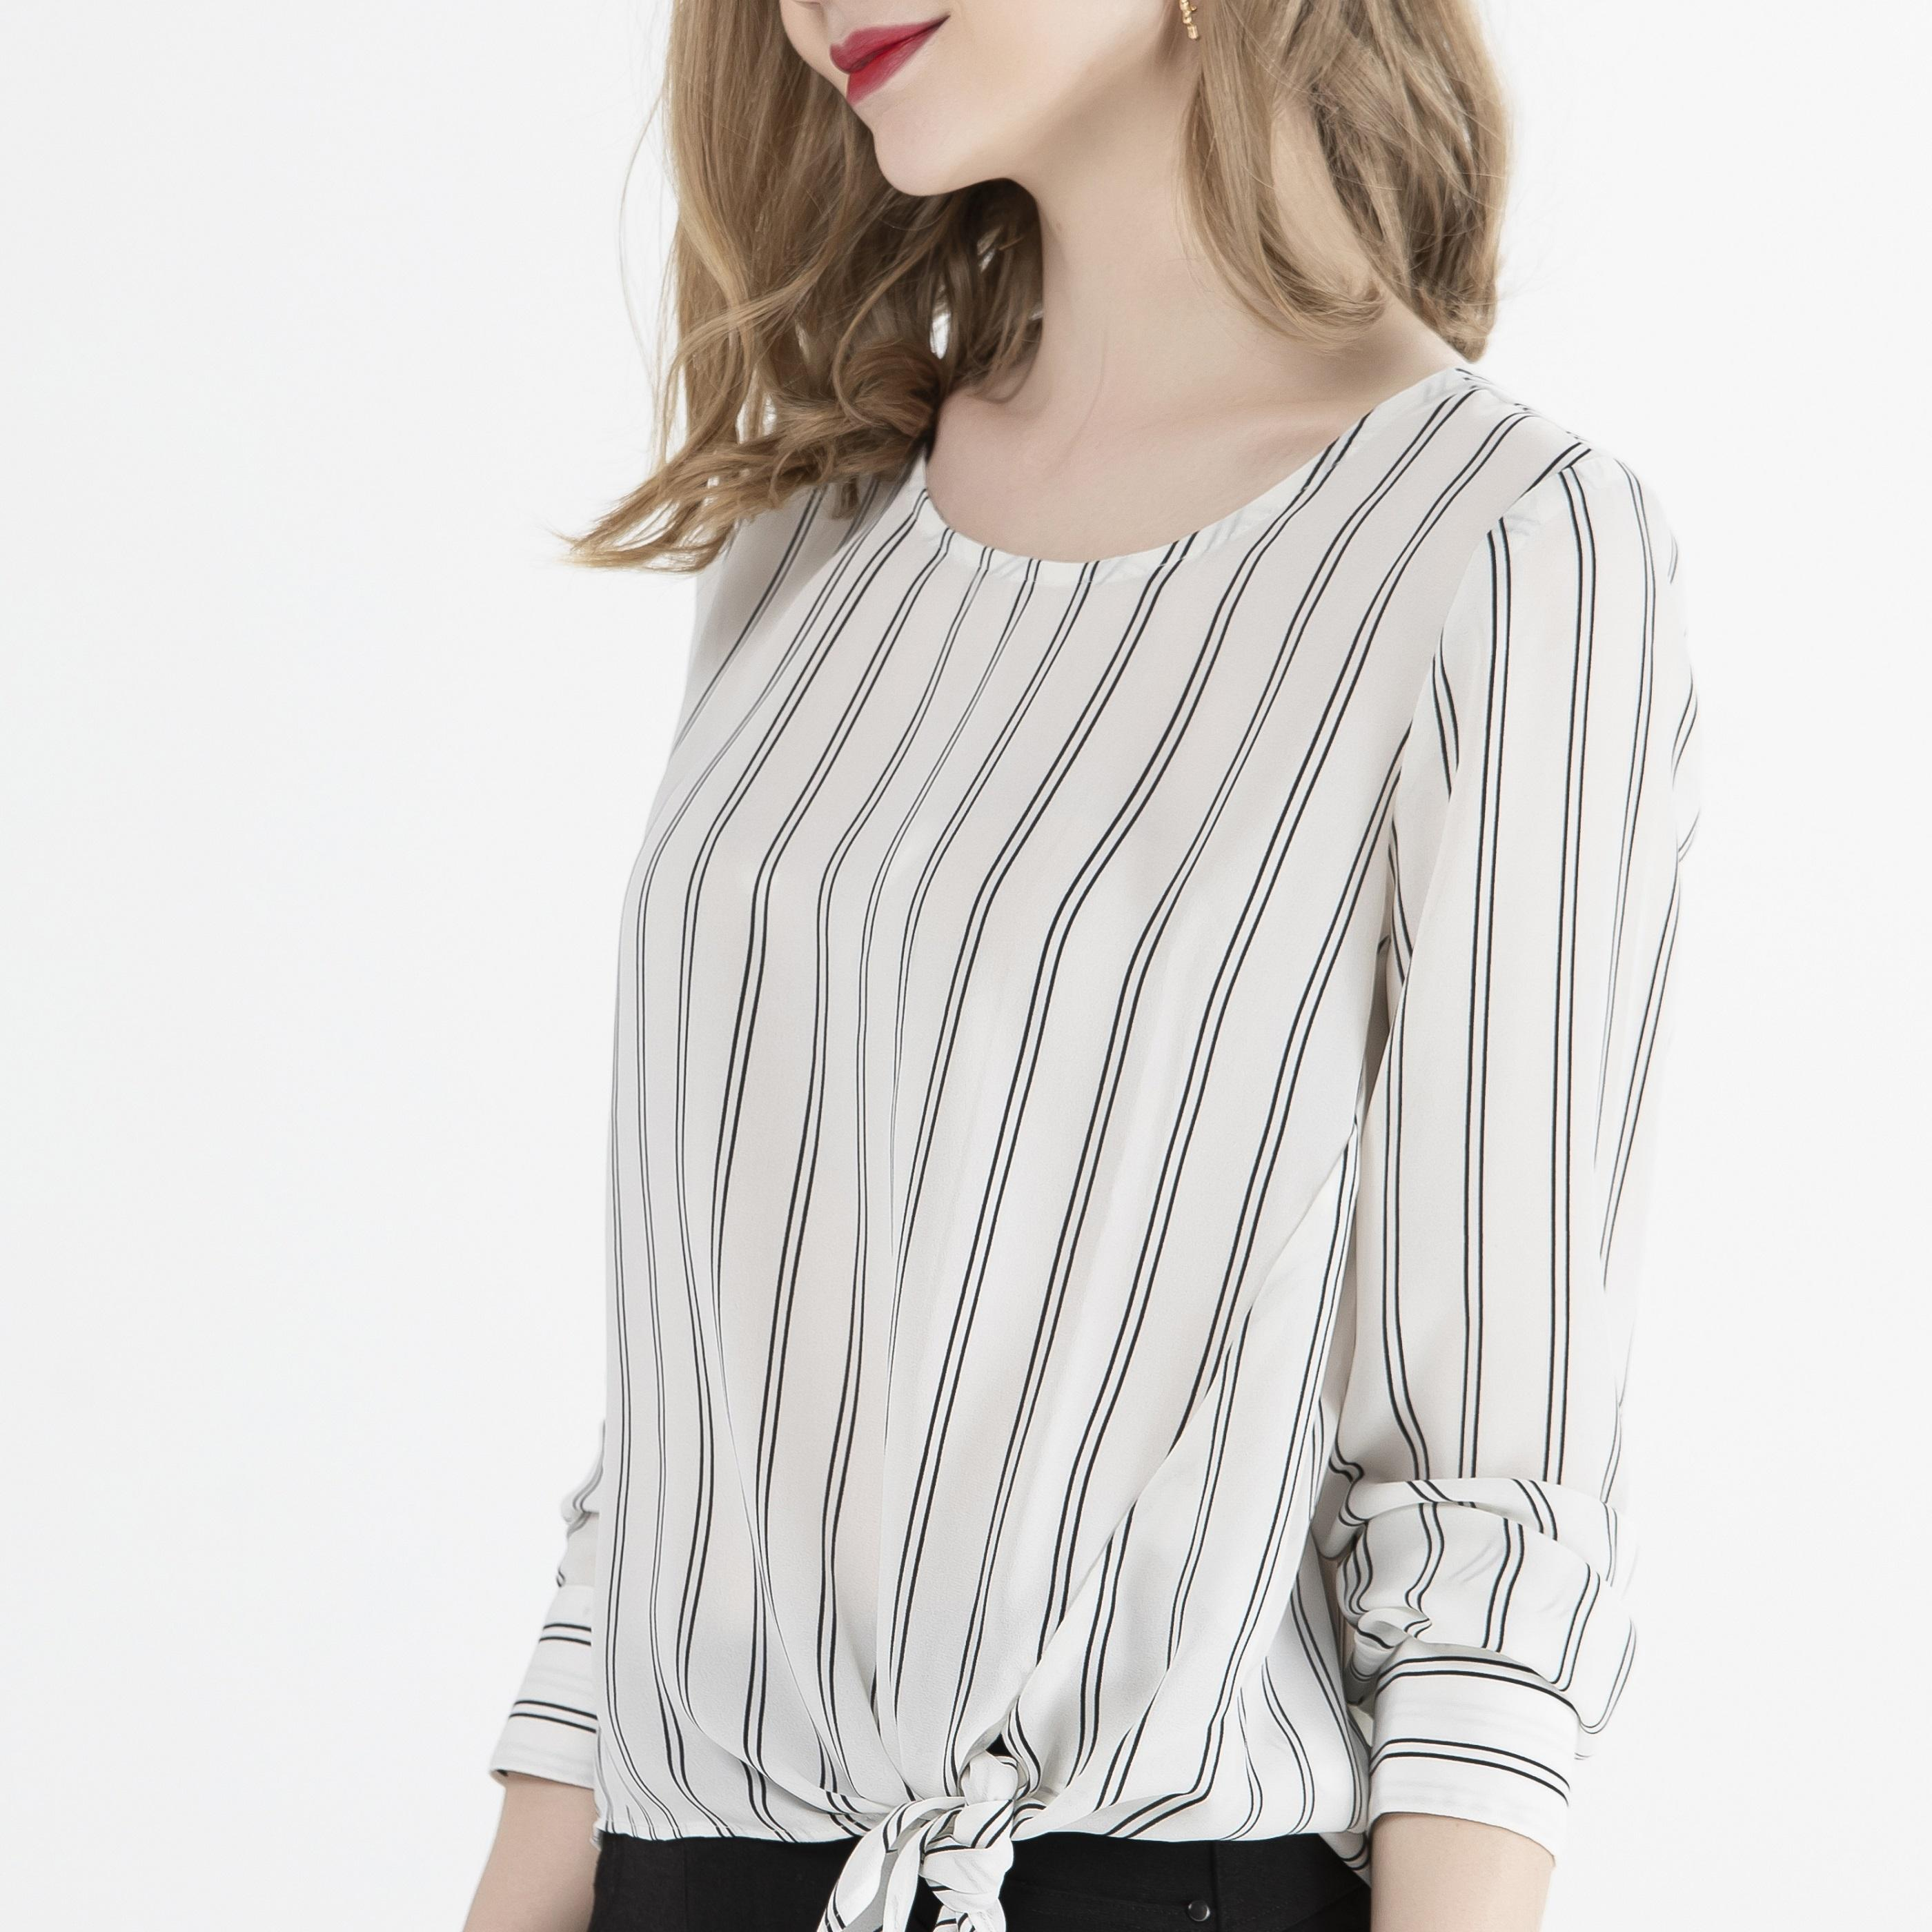 Ladies Spring Fashion Elegant Casual Round Neck Long Sleeve striped Shirts Blouses for Women